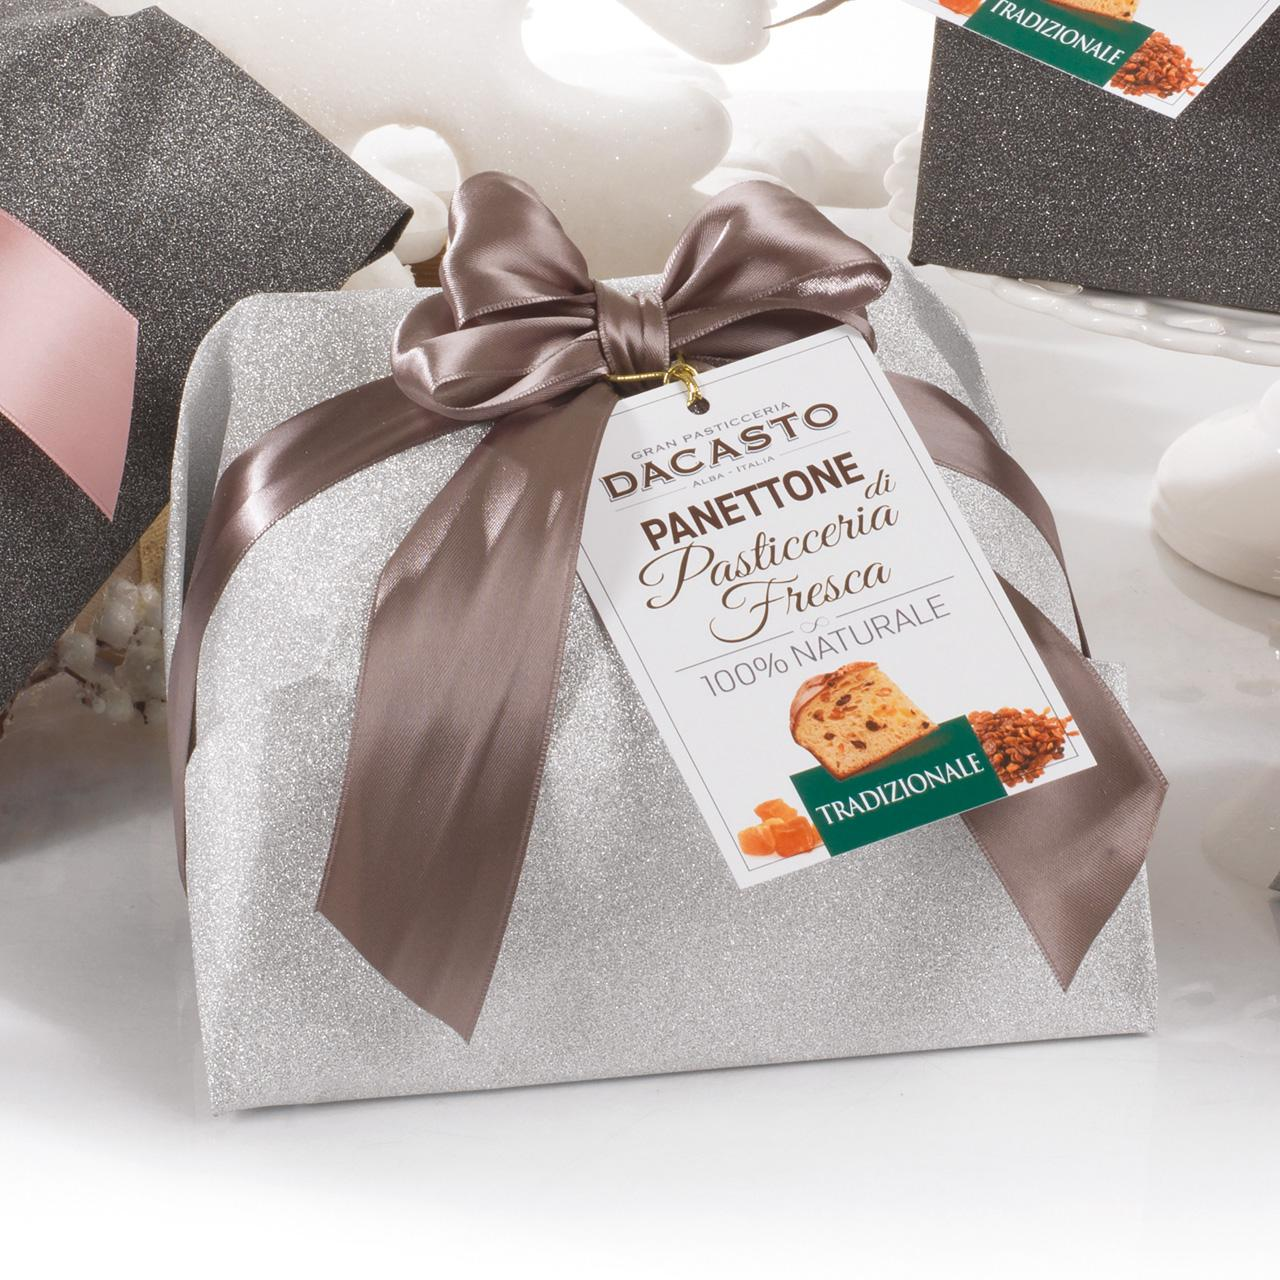 Traditional Panettone (silver Wrapping Paper) And Panettone With Marron Glacé (silver Wrapping Paper)